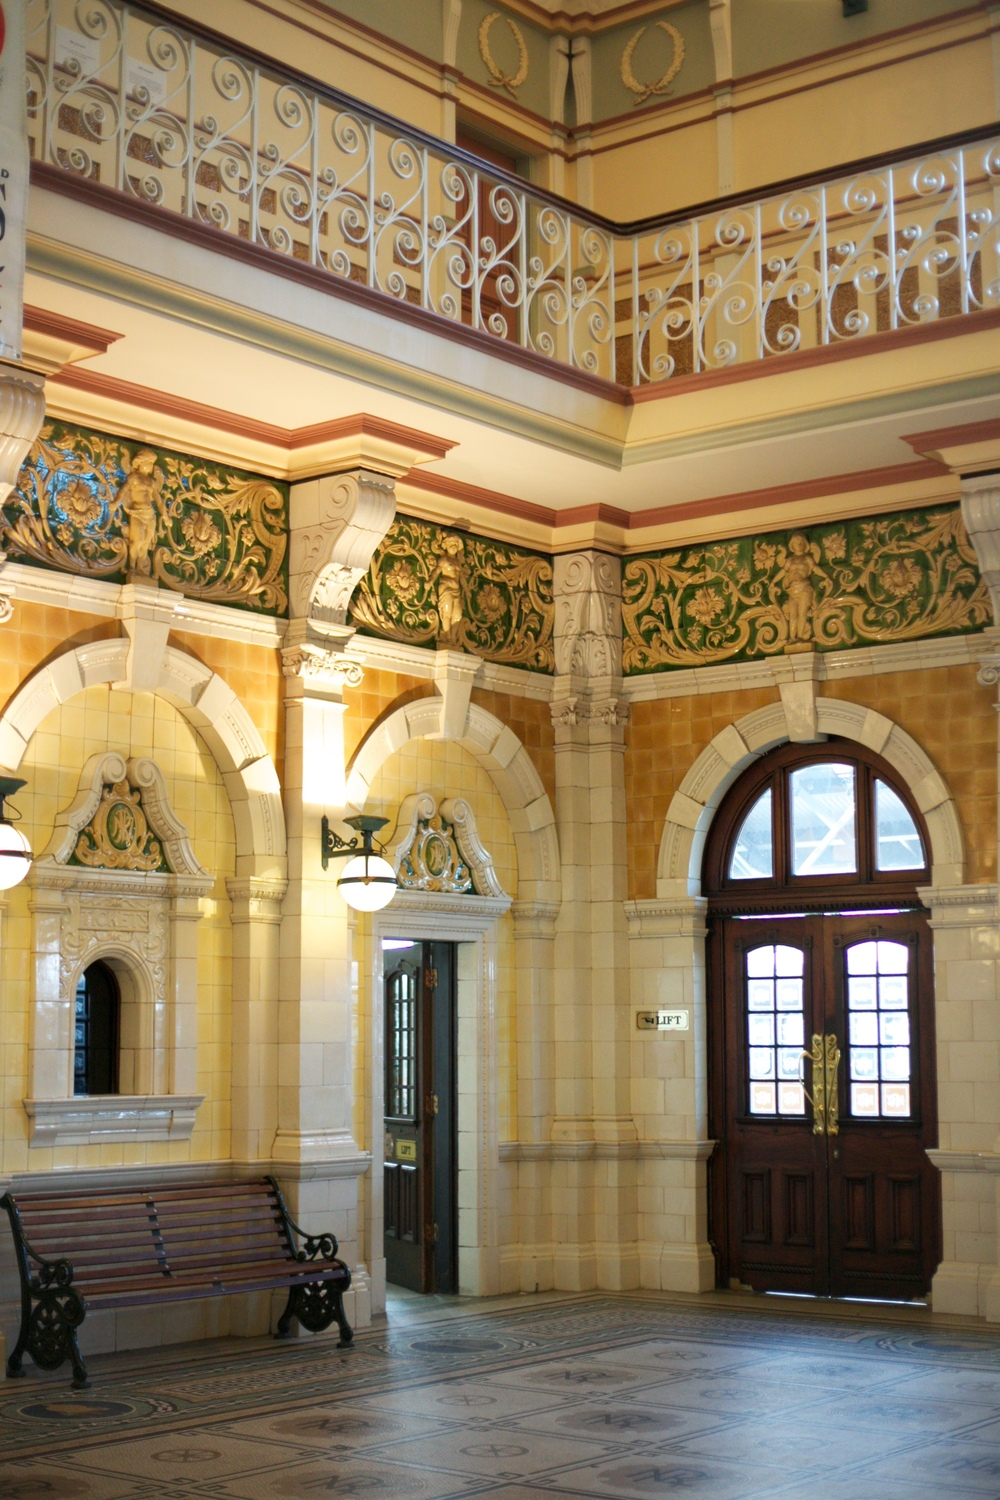 The inside of the Dunedin Railway Station.